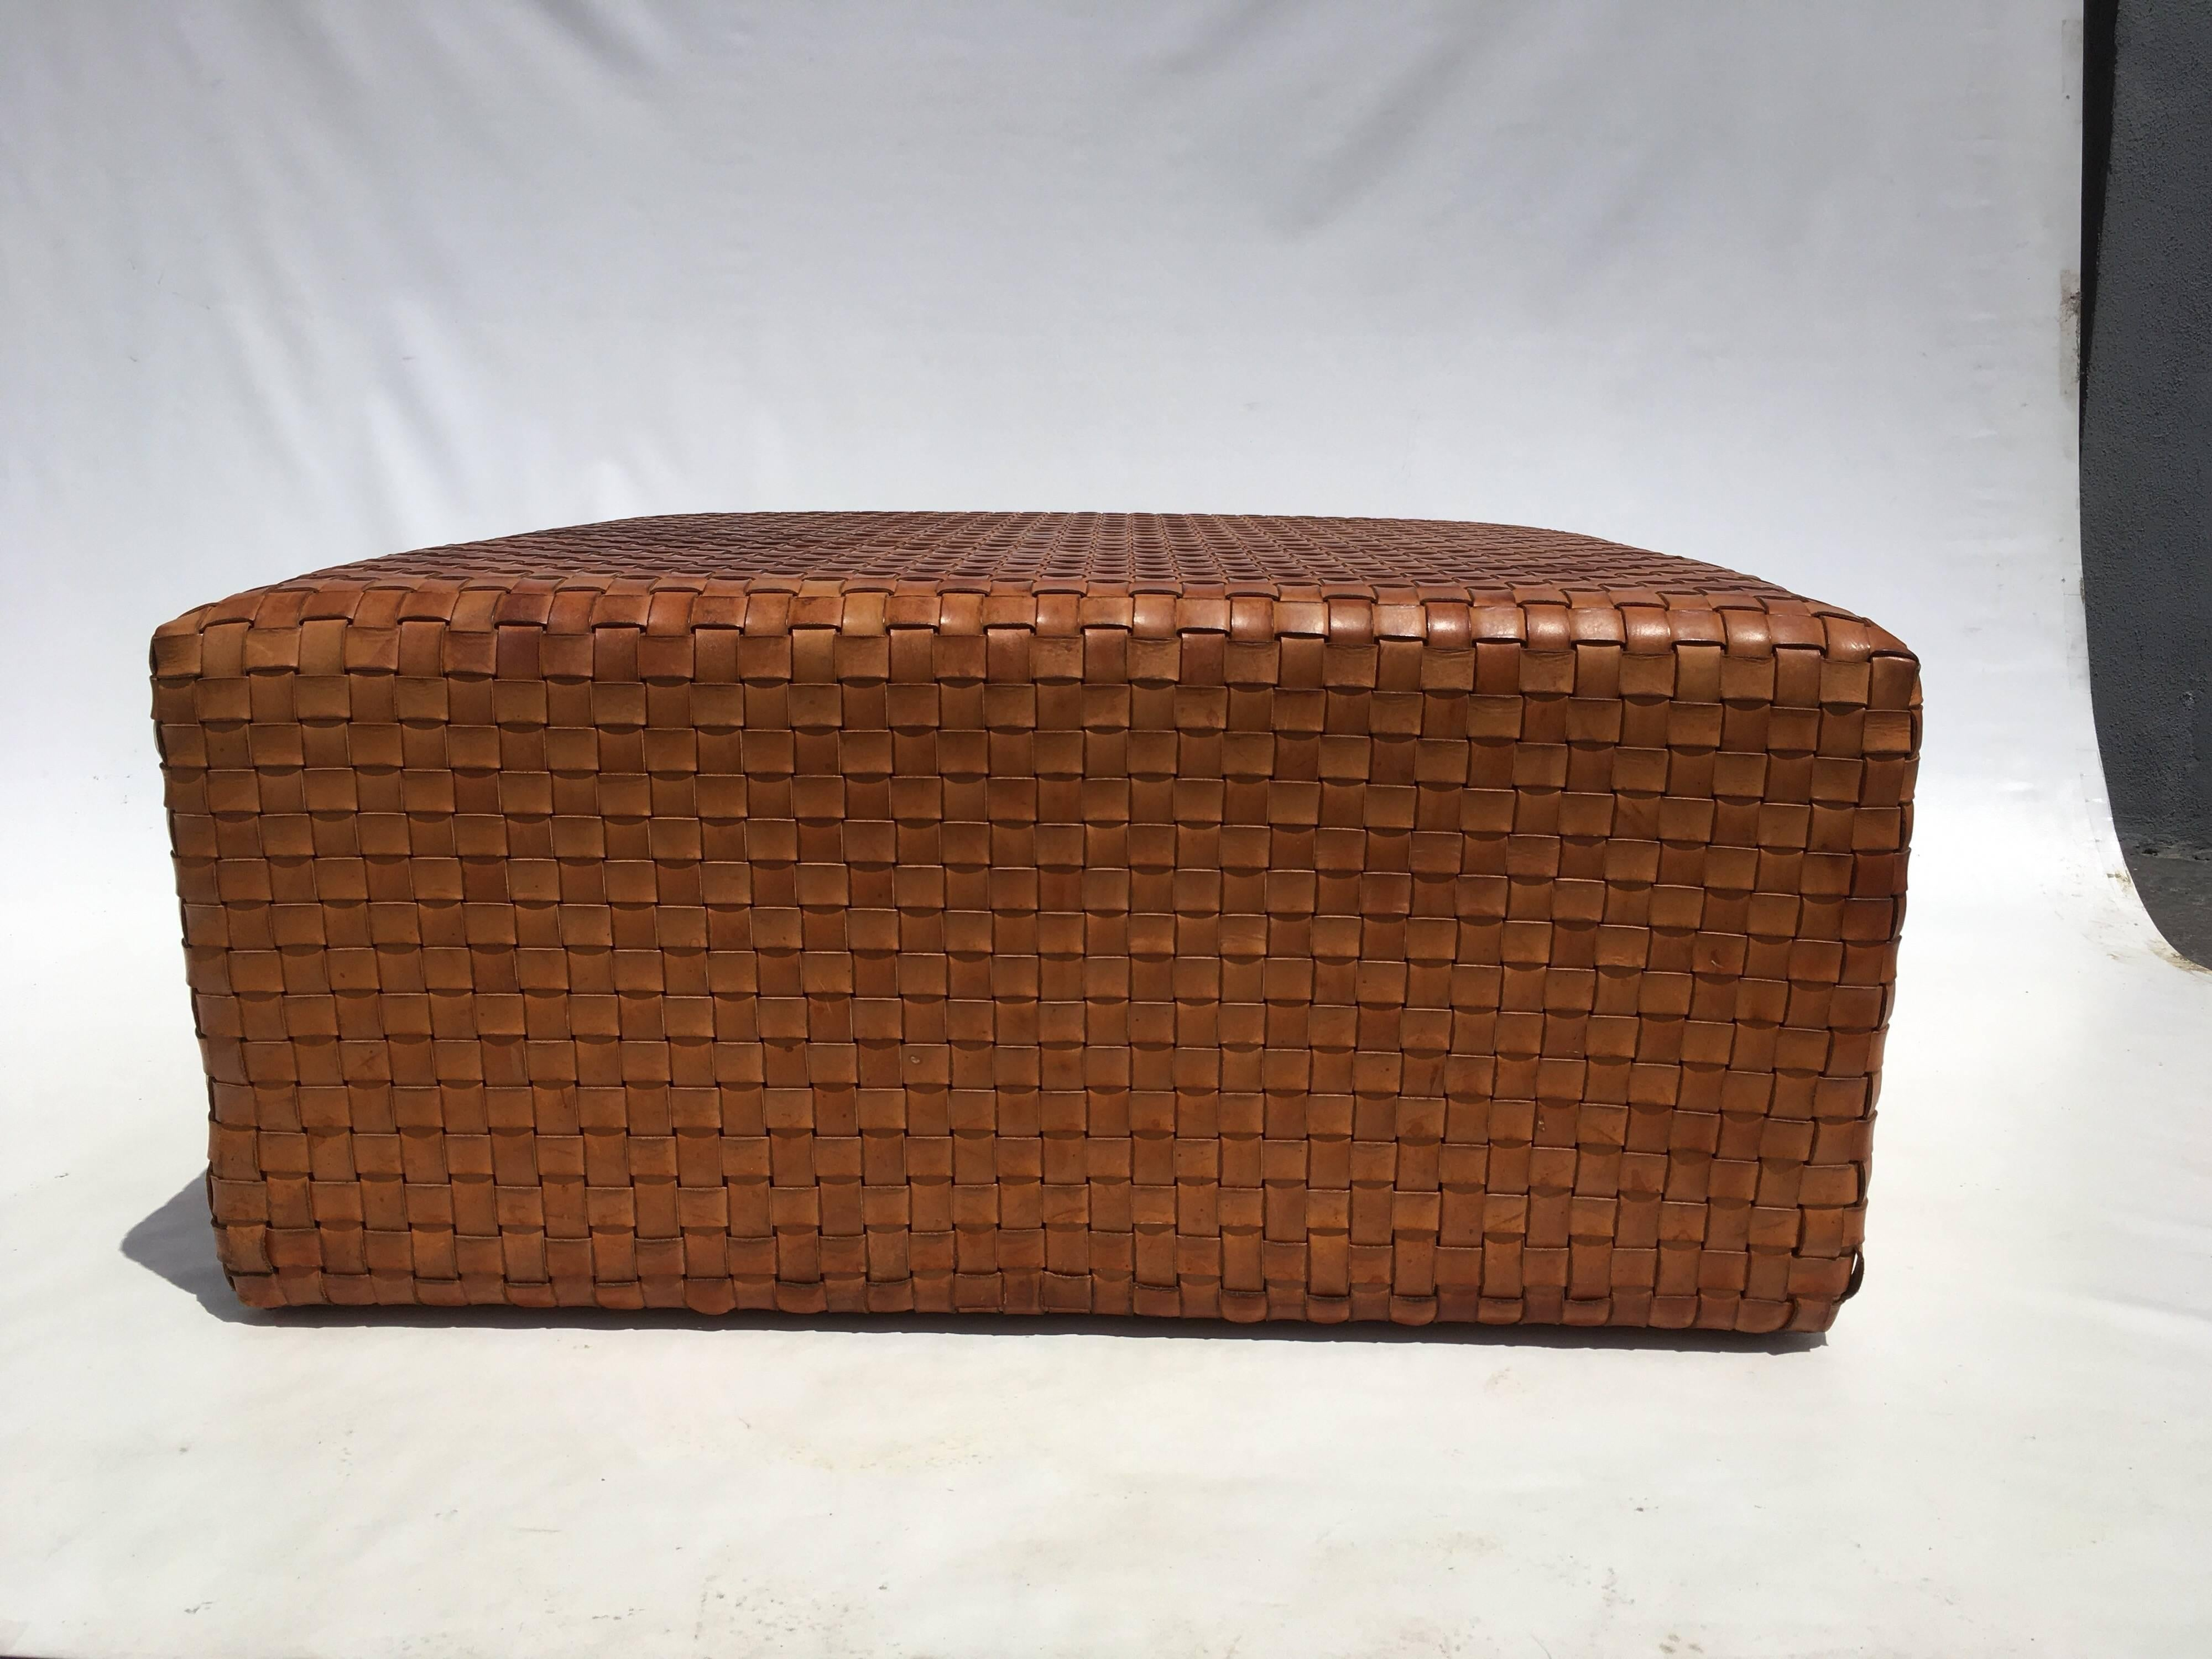 and home ottoman nice with ideas kitchen design interior board on decor cowhide room